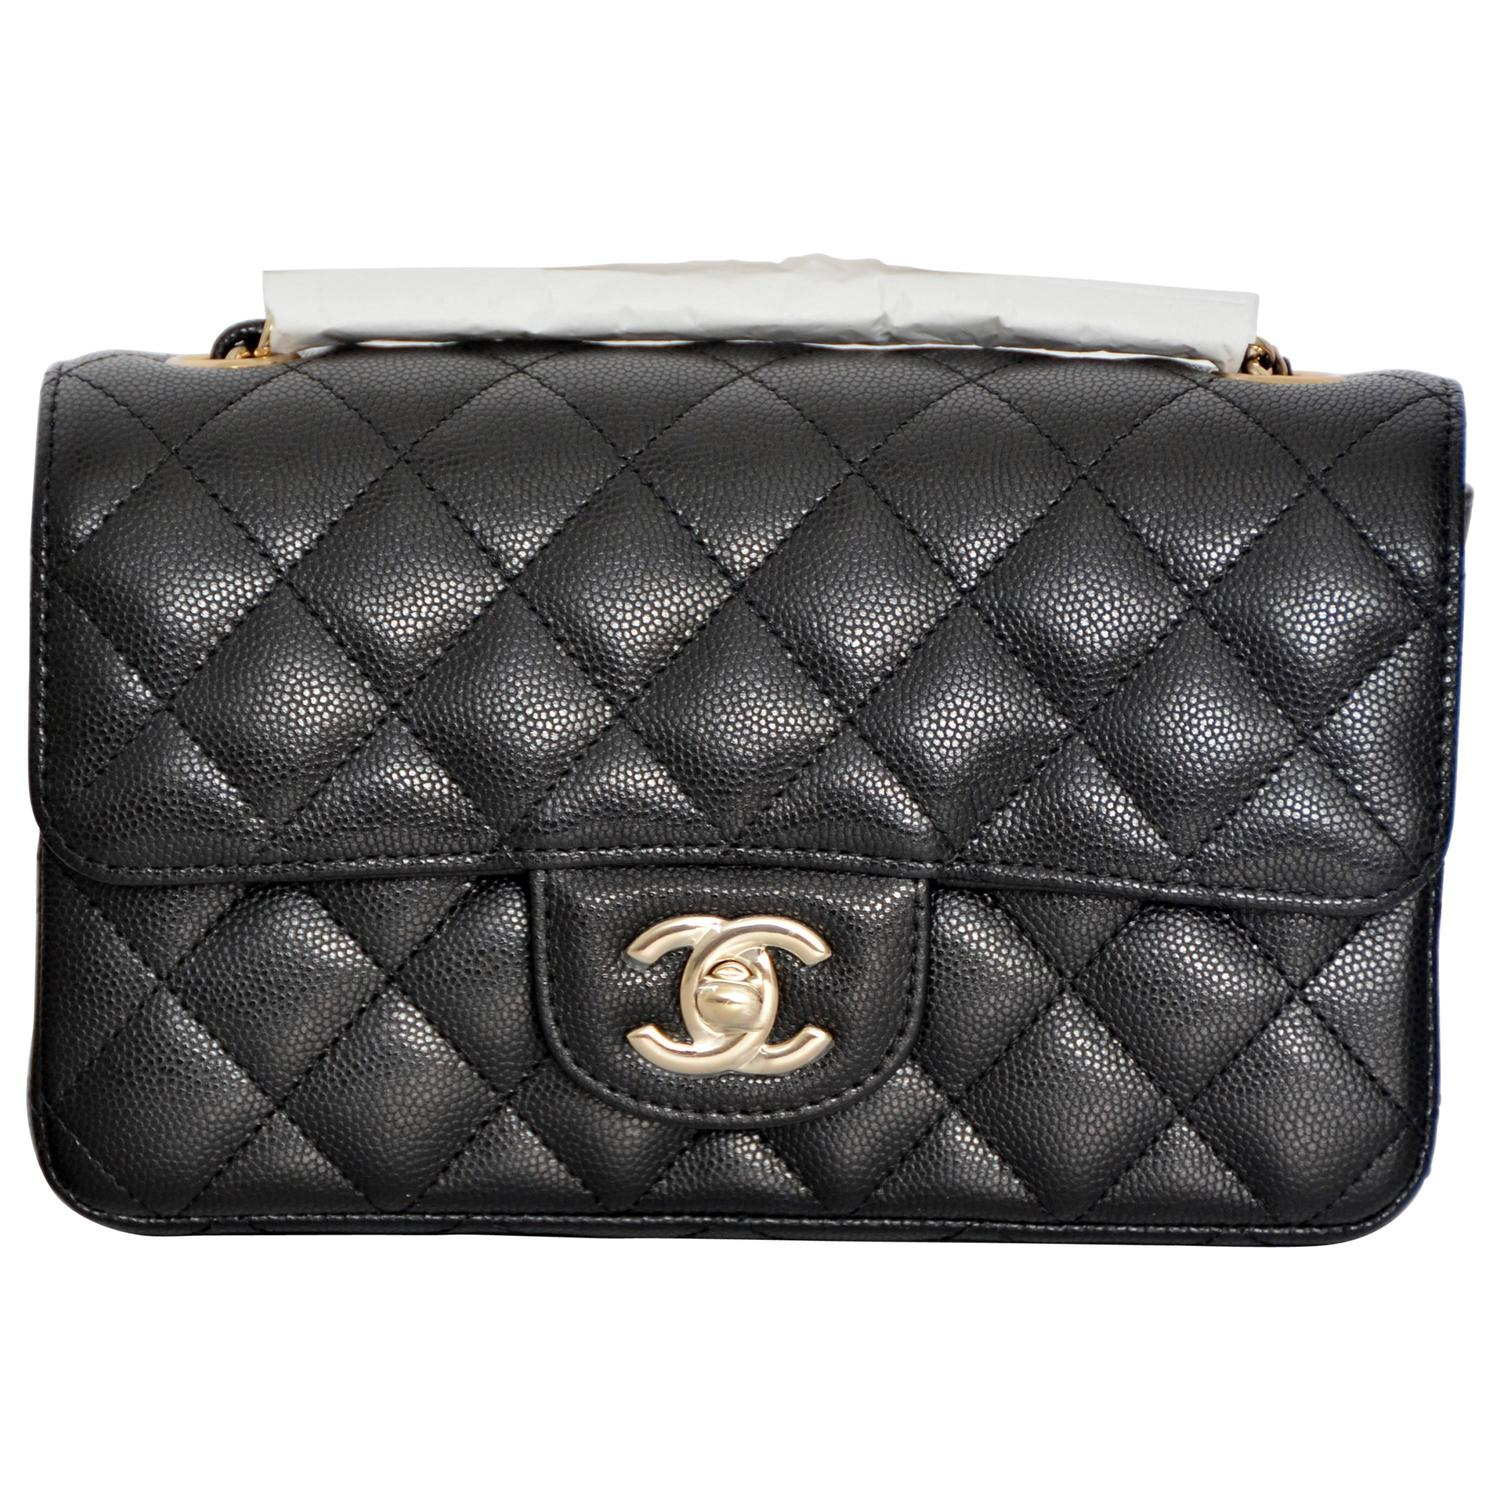 33727233d556 CHANEL  17 Rectangle New Mini Black Caviar Light Gold Flap RARE SOLD OUT at  1stdibs